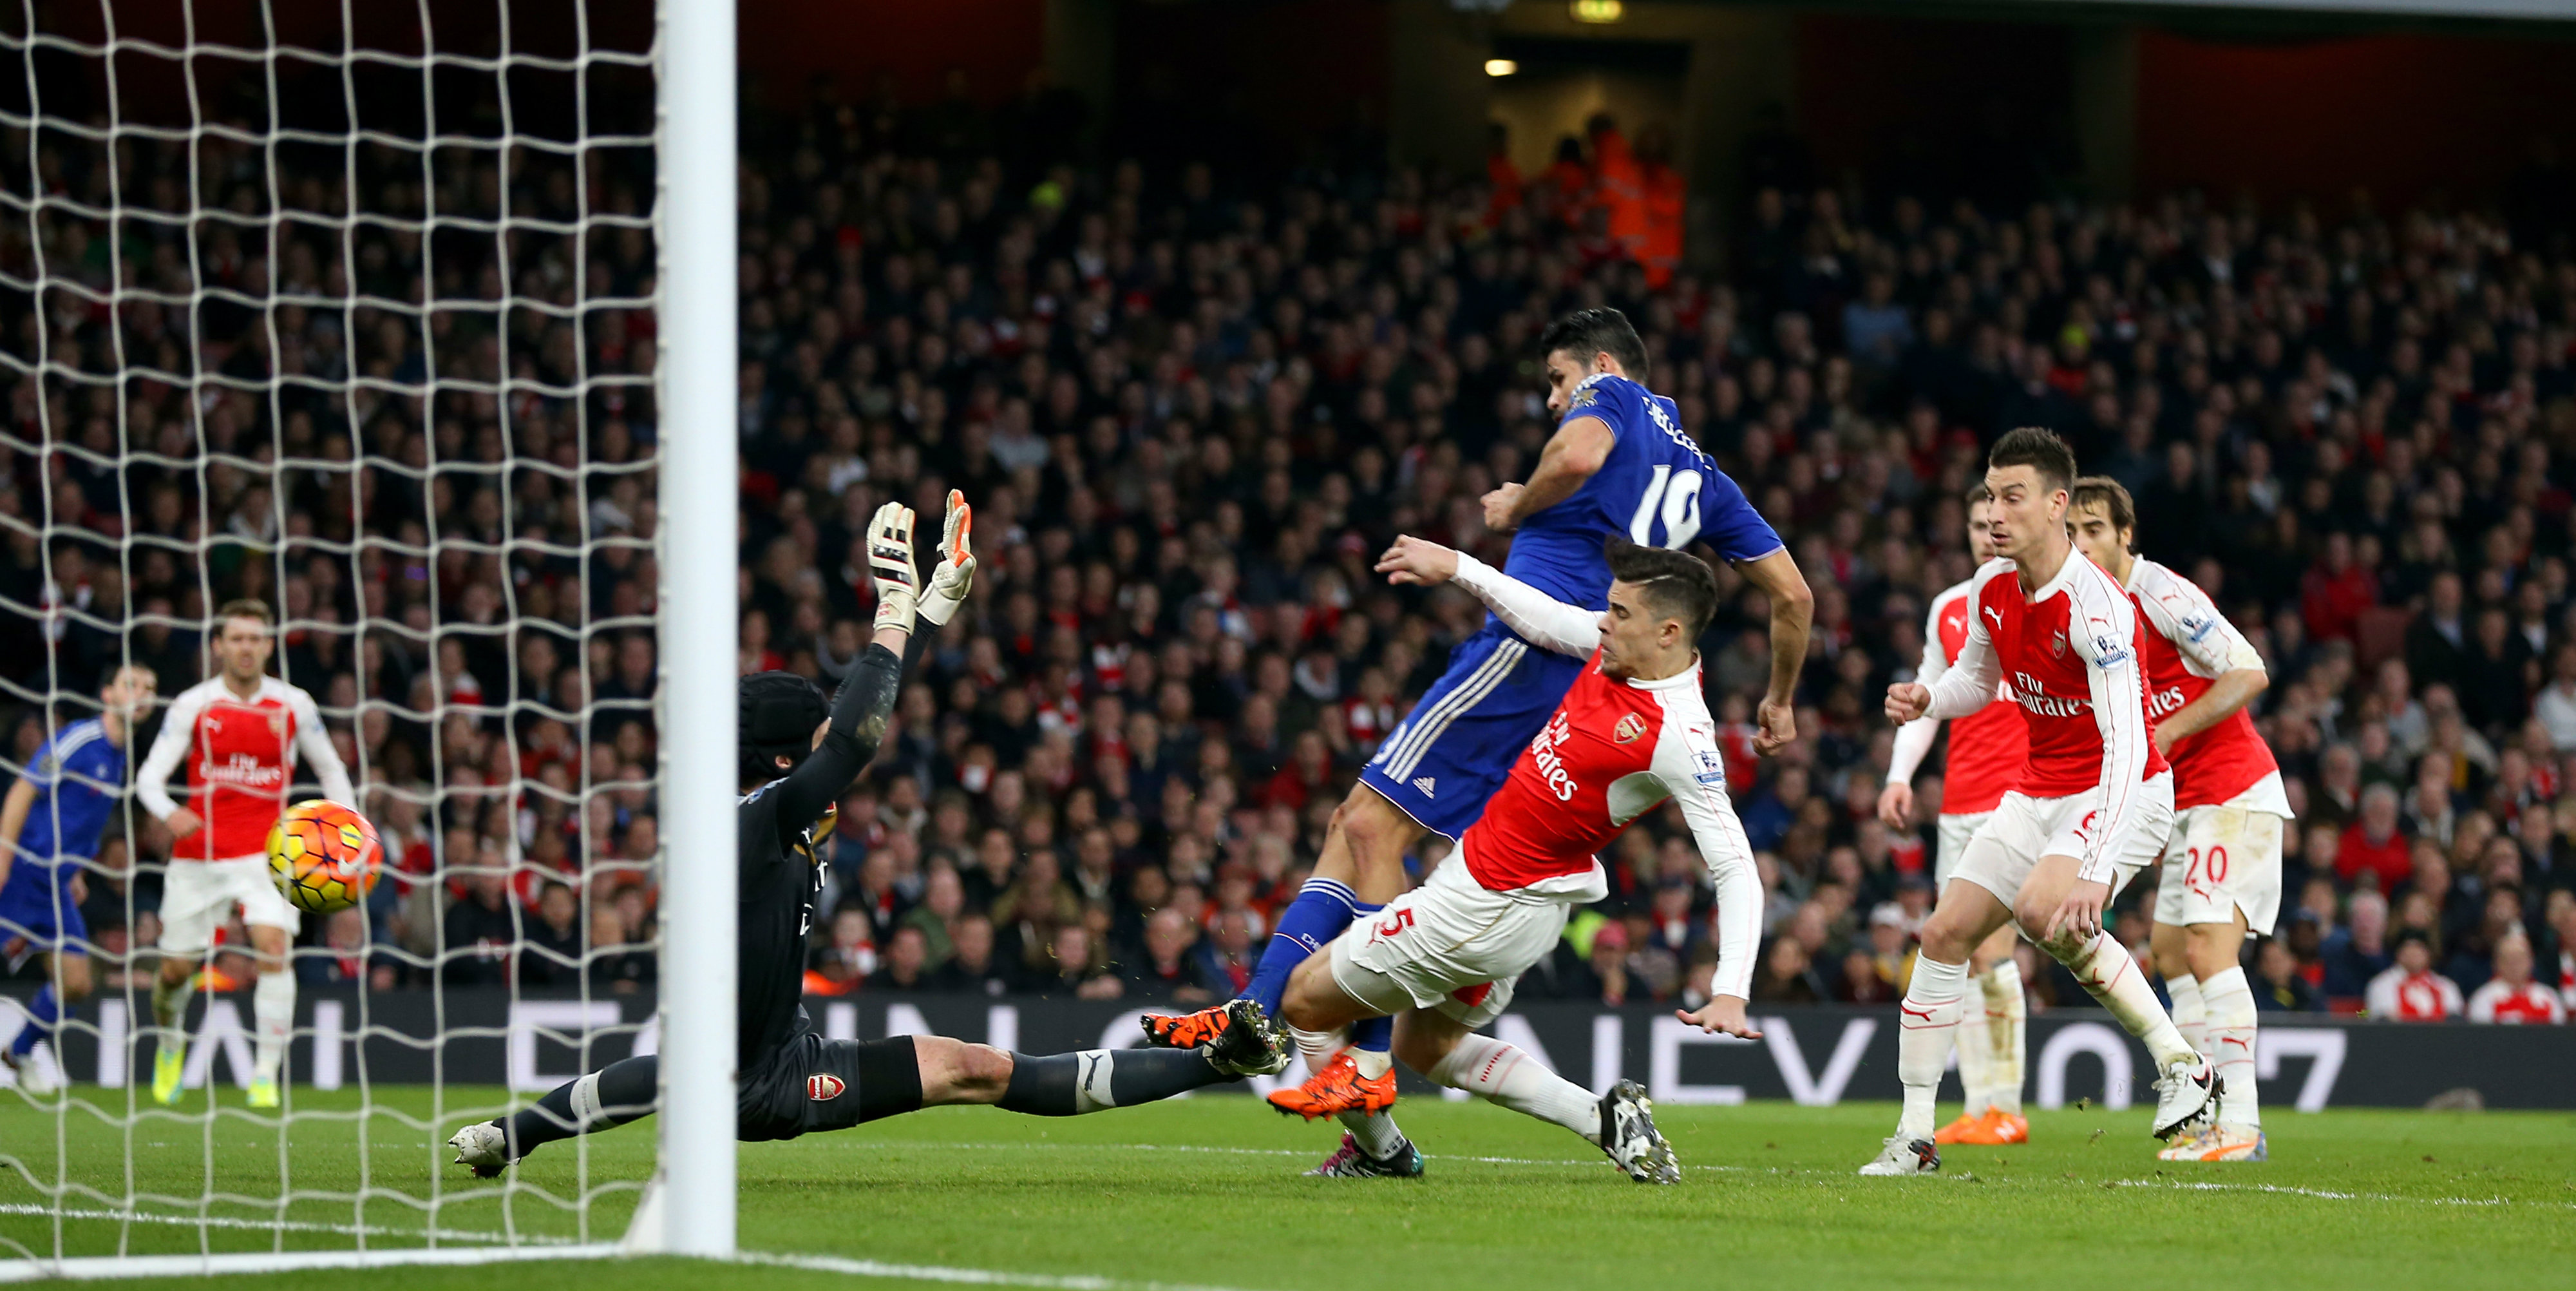 Diego Costas goal gave Chelsea another win against Arsenal last weekend